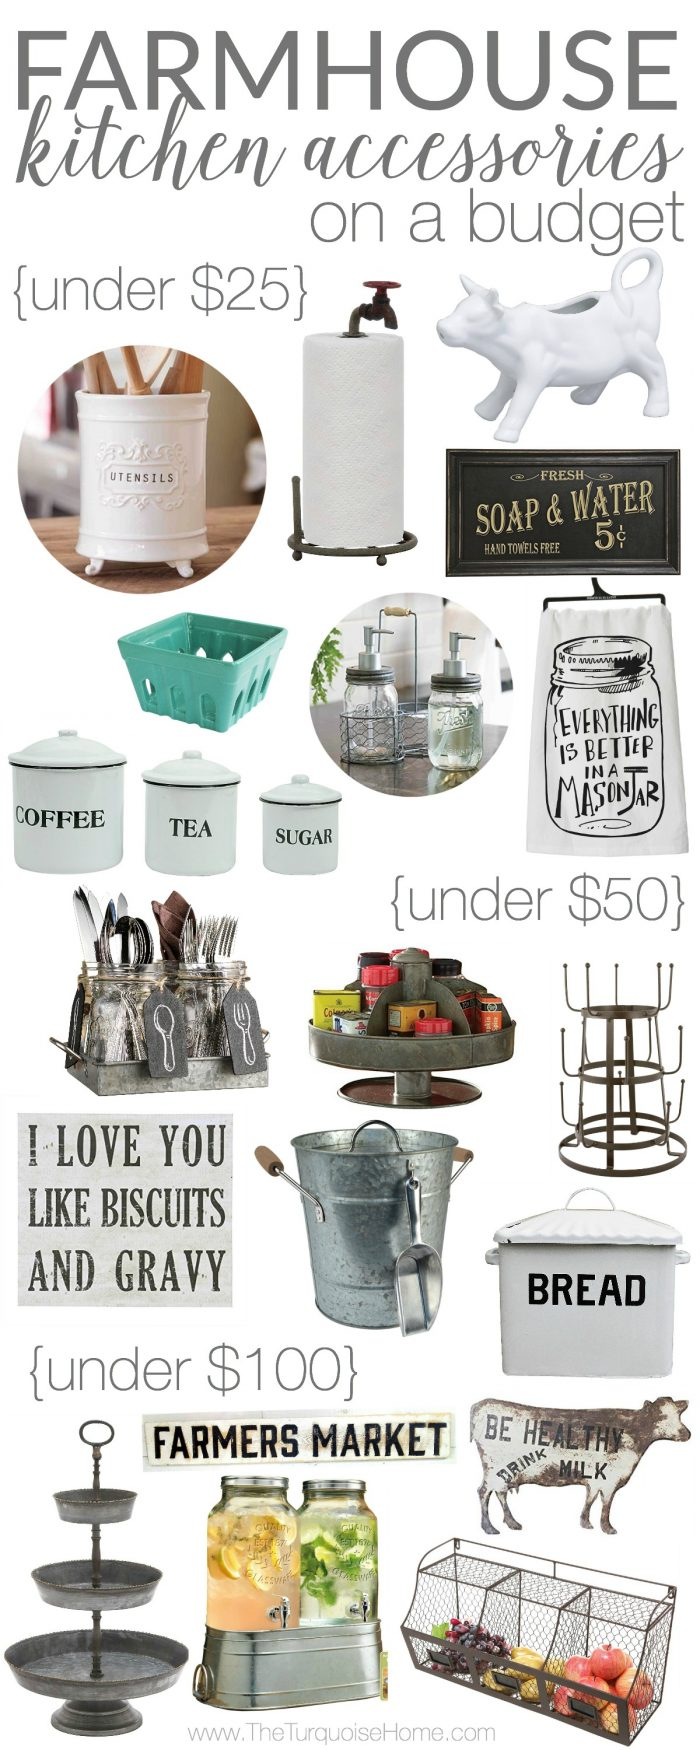 Farmhouse kitchen accessories on a budget Home design kitchen accessories